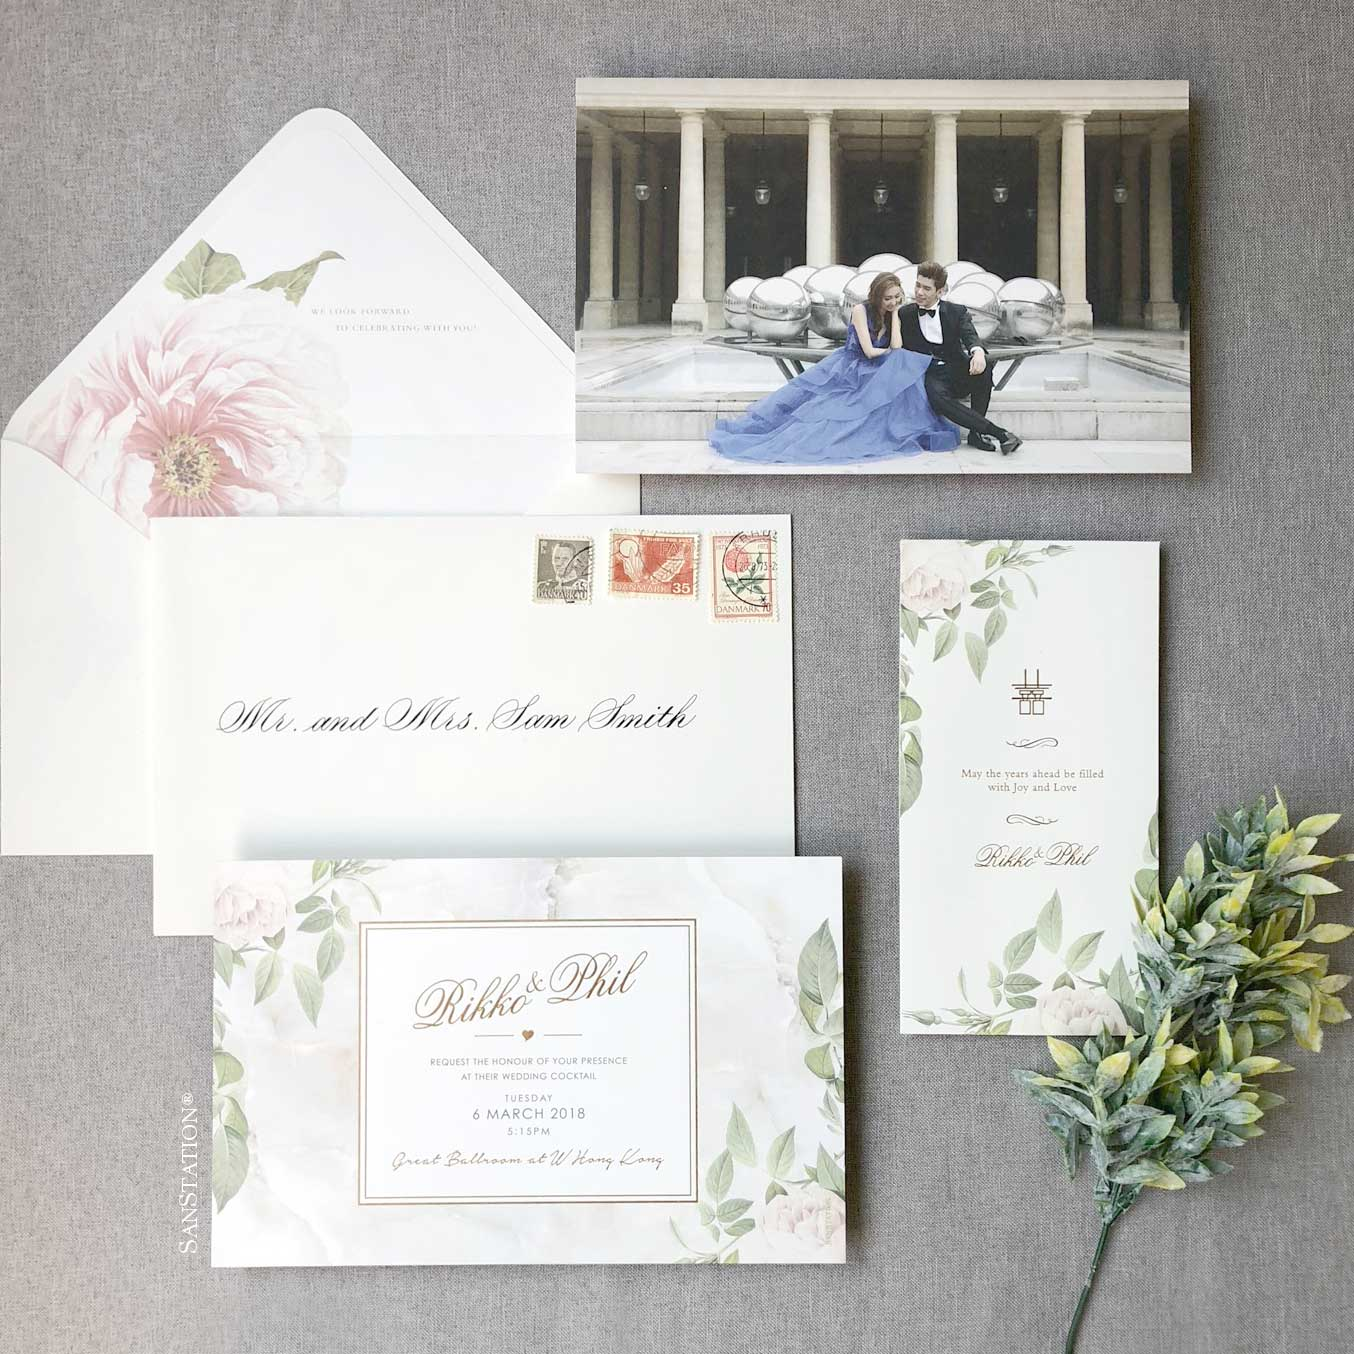 SanStation is remarkable for beautiful and luxurious bridal and ...